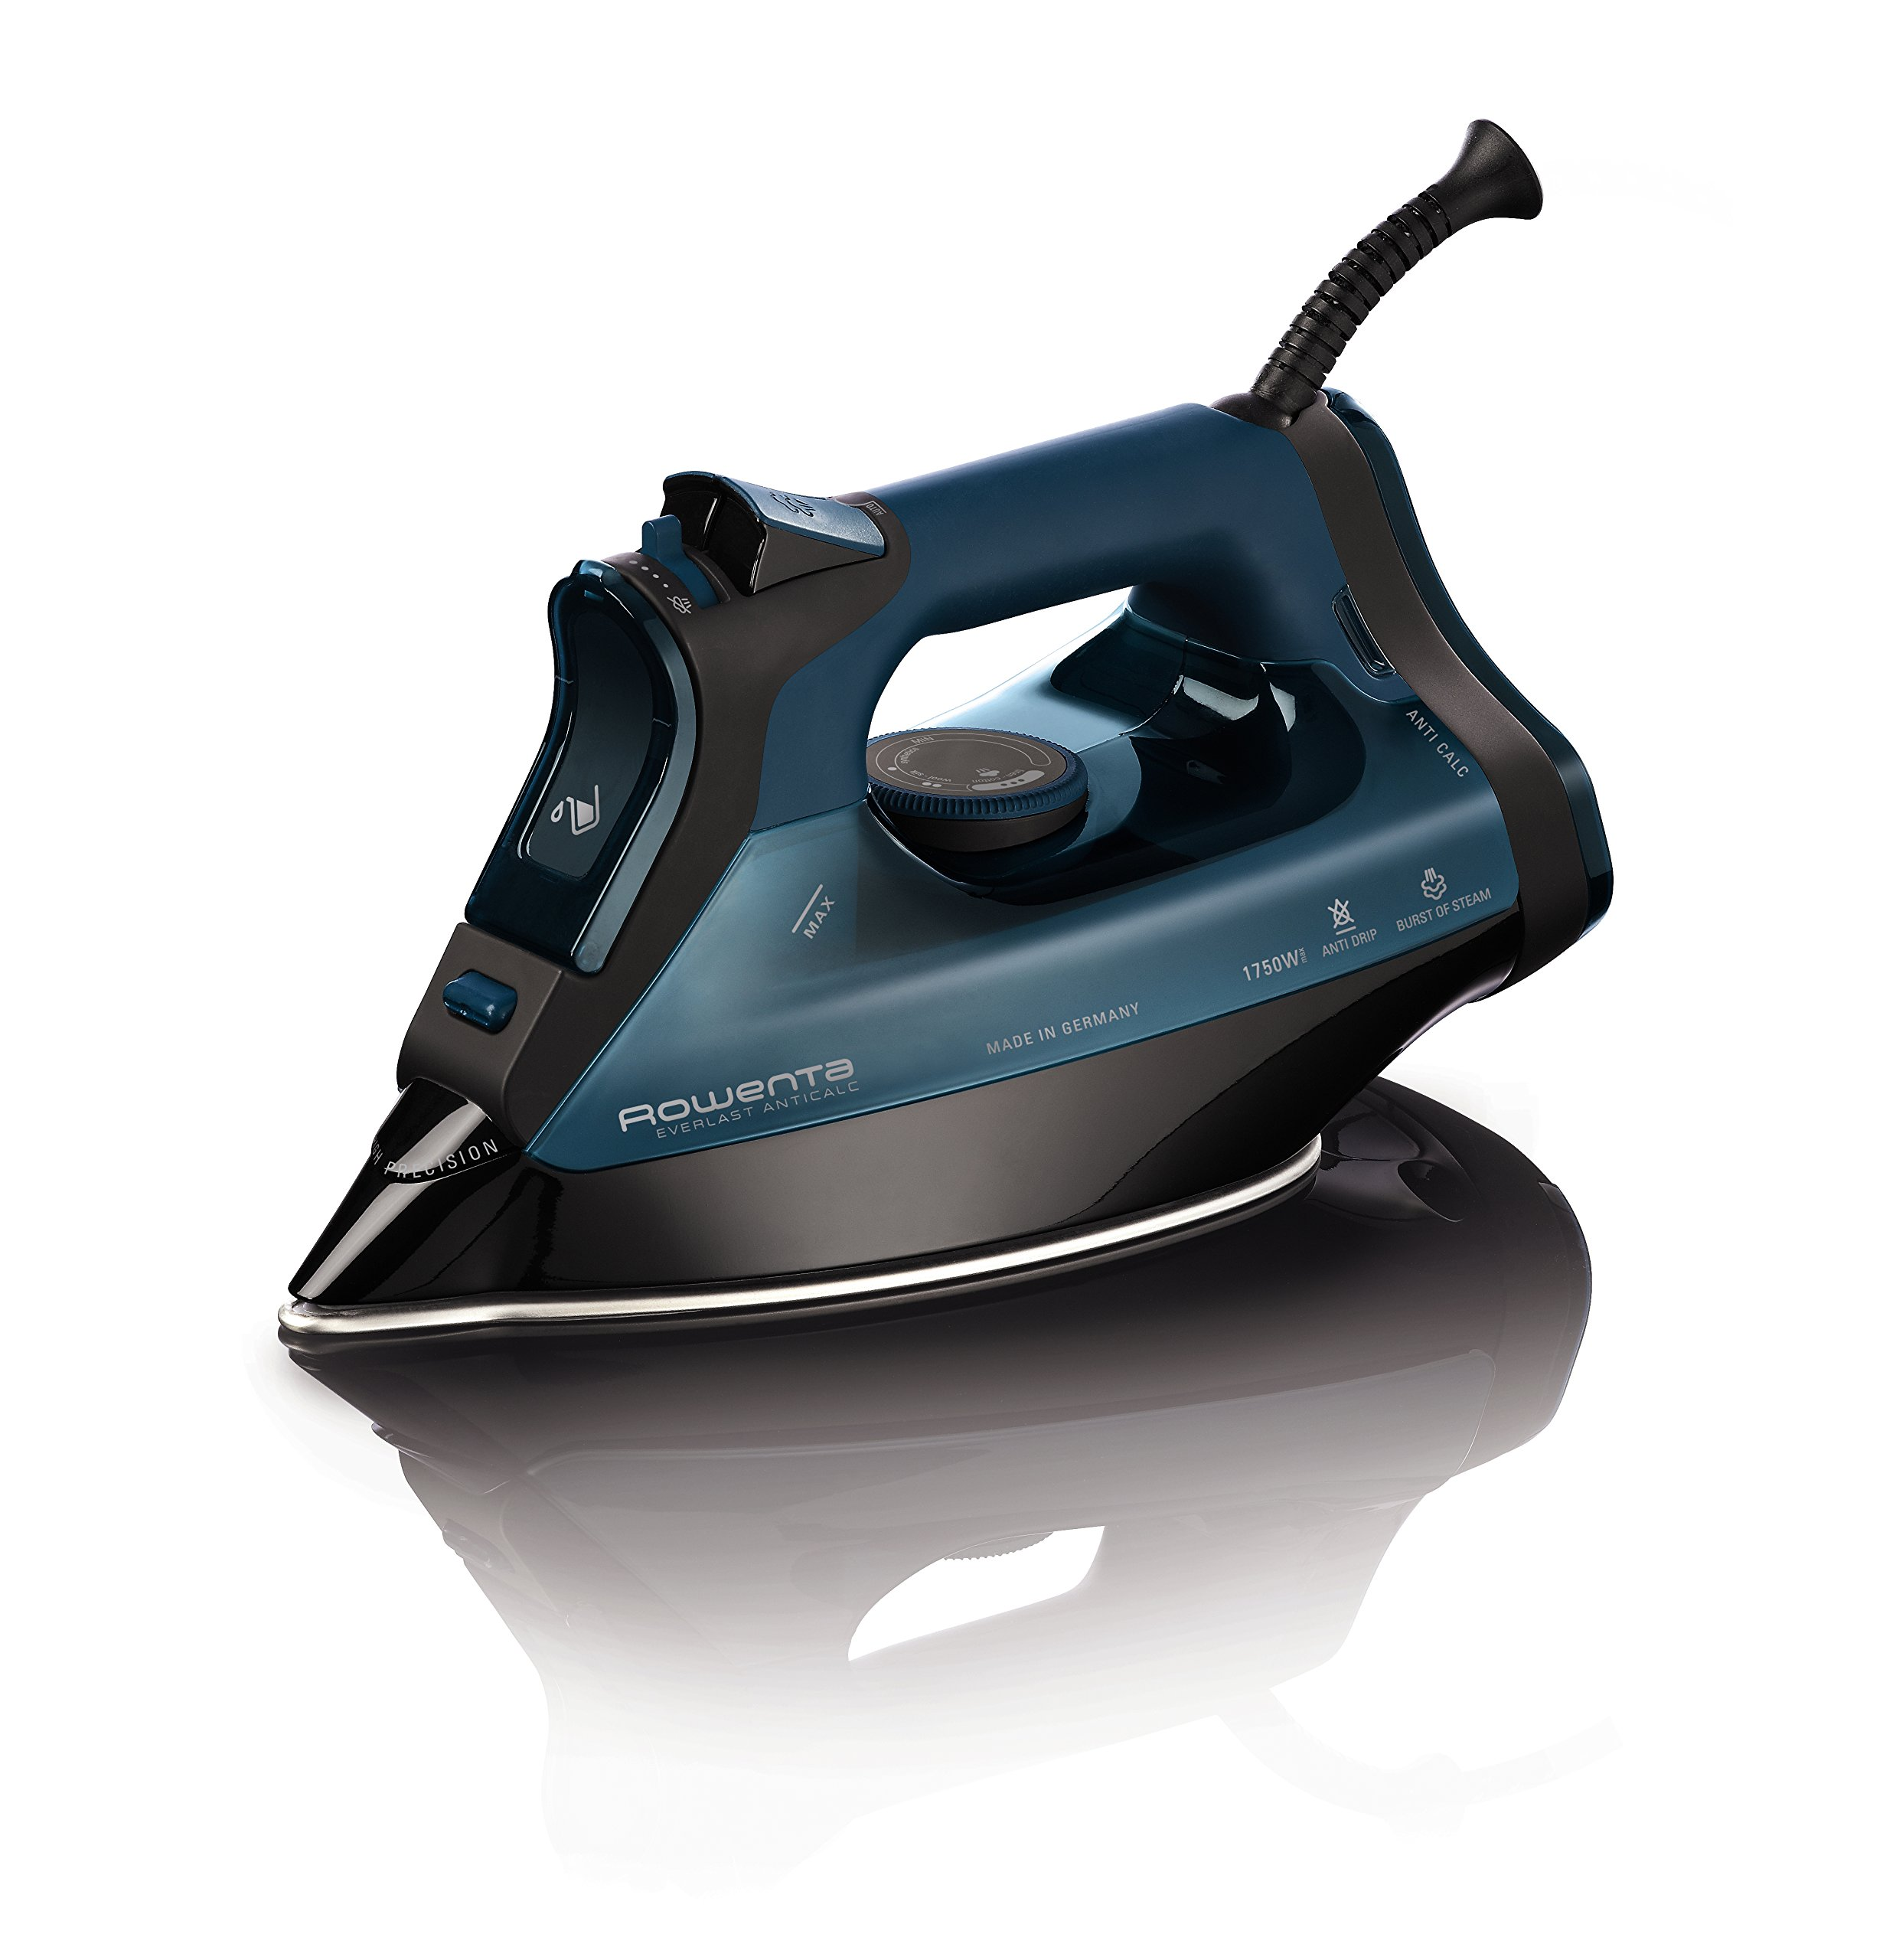 Rowenta Everlast 1750-Watt Stainless Steel Soleplate with Auto-Off, 400-Hole Anti-Calc Steam Iron Blue